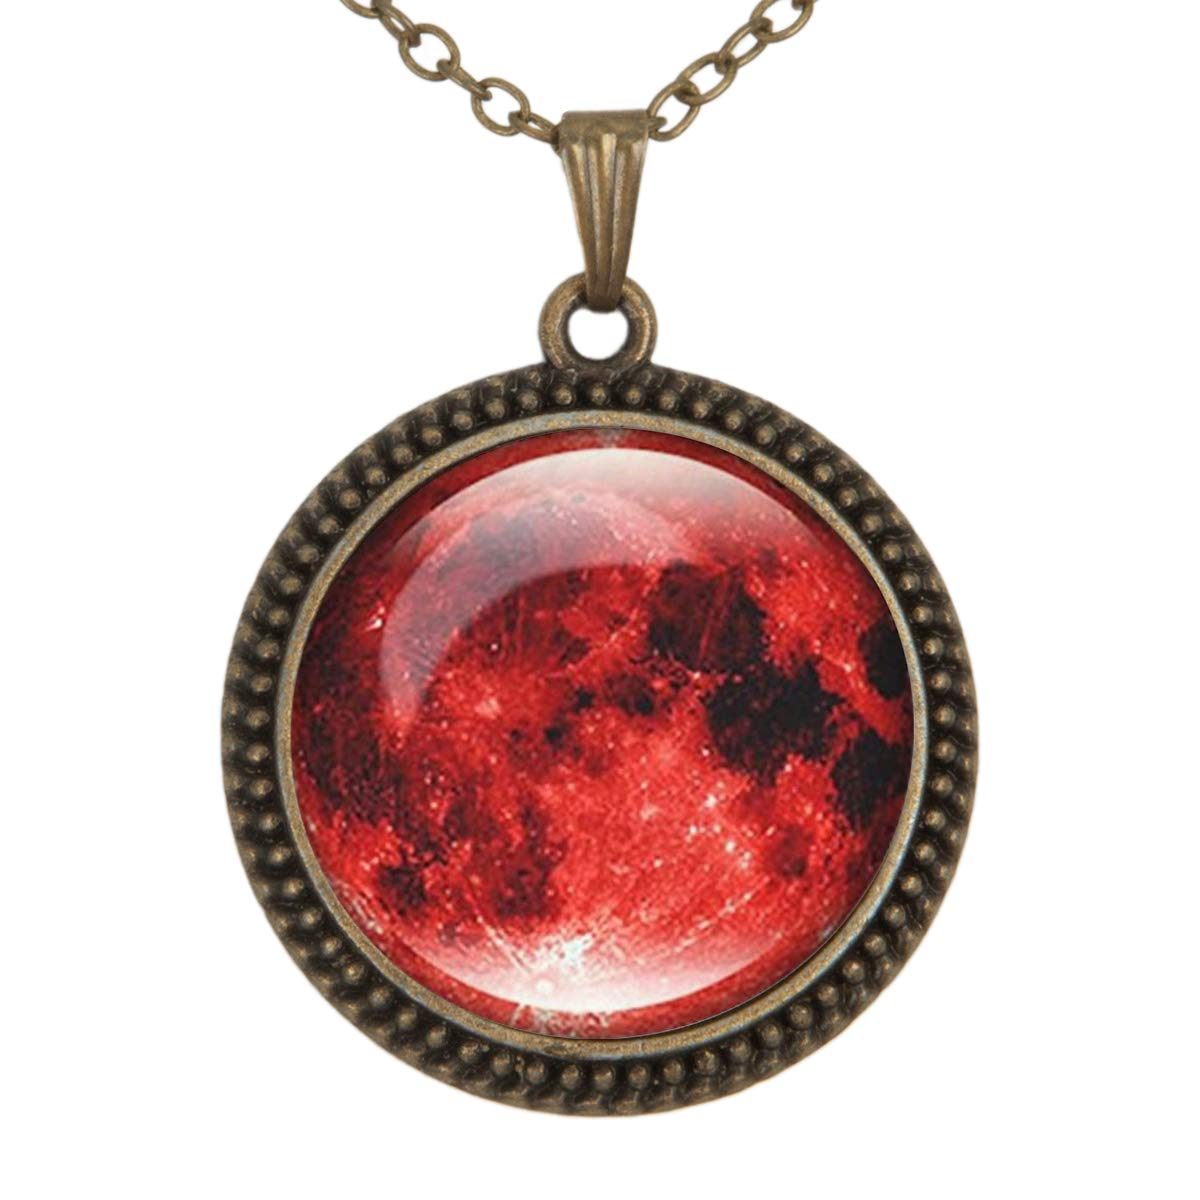 Lightrain Red Moon Art Pendant Necklace Vintage Bronze Chain Statement Necklace Handmade Jewelry Gifts